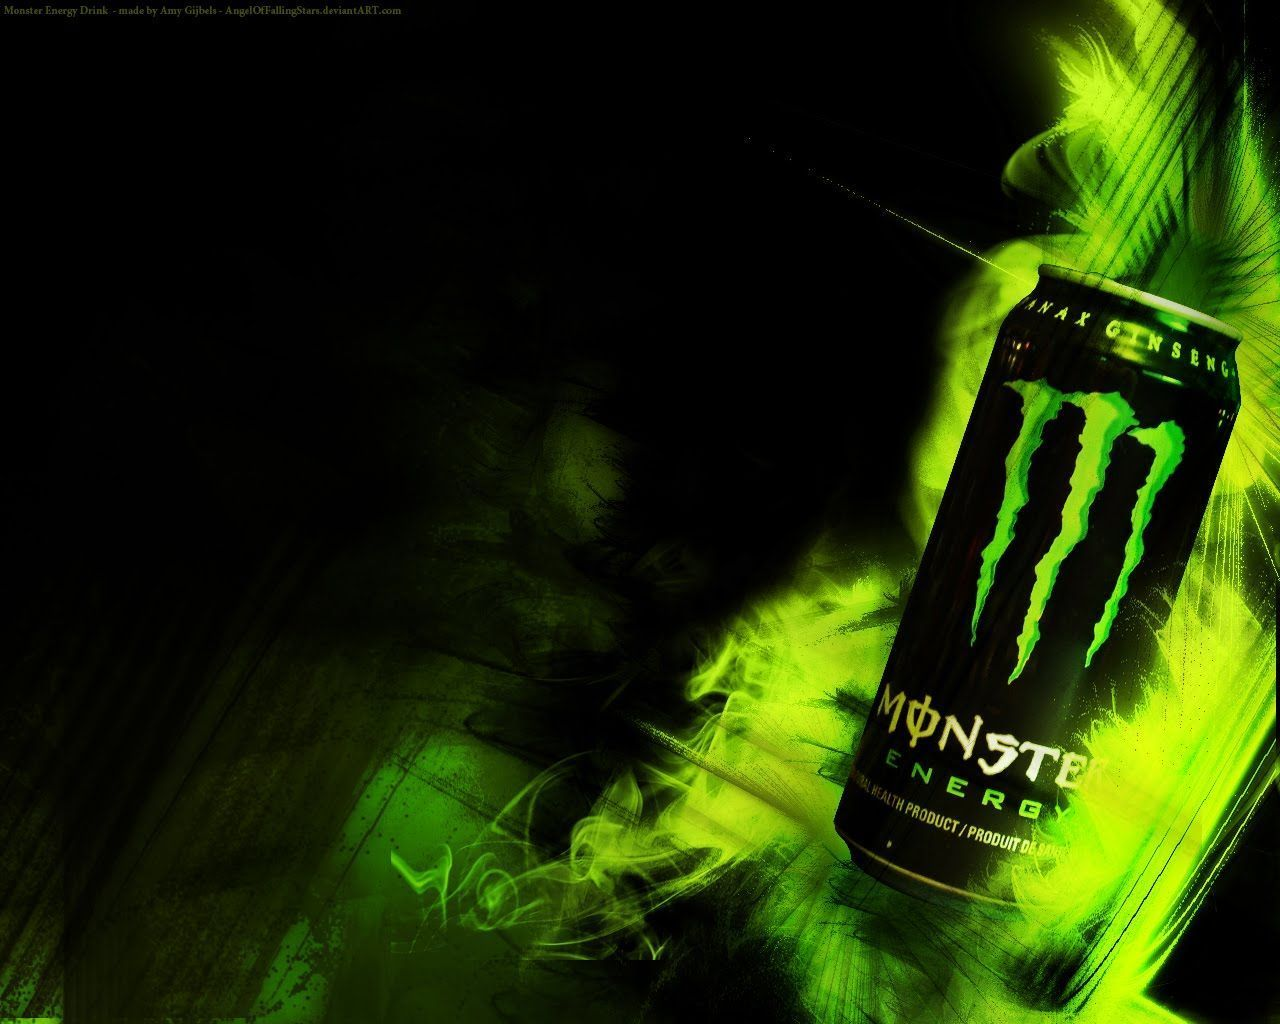 Monster energy wallpapers hd wallpaper cave best games monster energy wallpapers hd wallpaper cave voltagebd Images